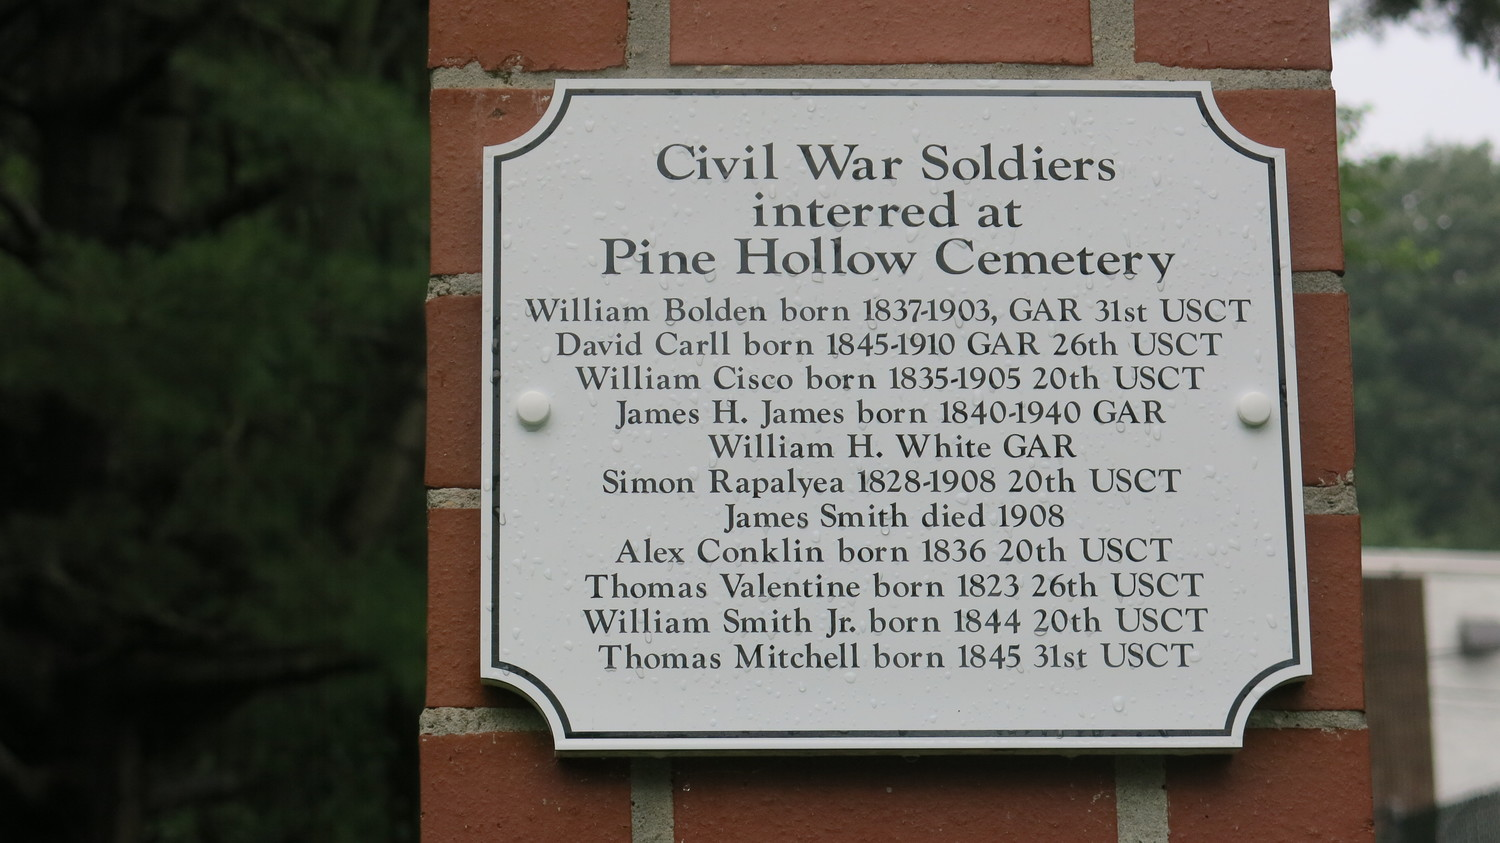 Eleven African American Civil War soldiers are interred at Pine Hollow Cemetery.